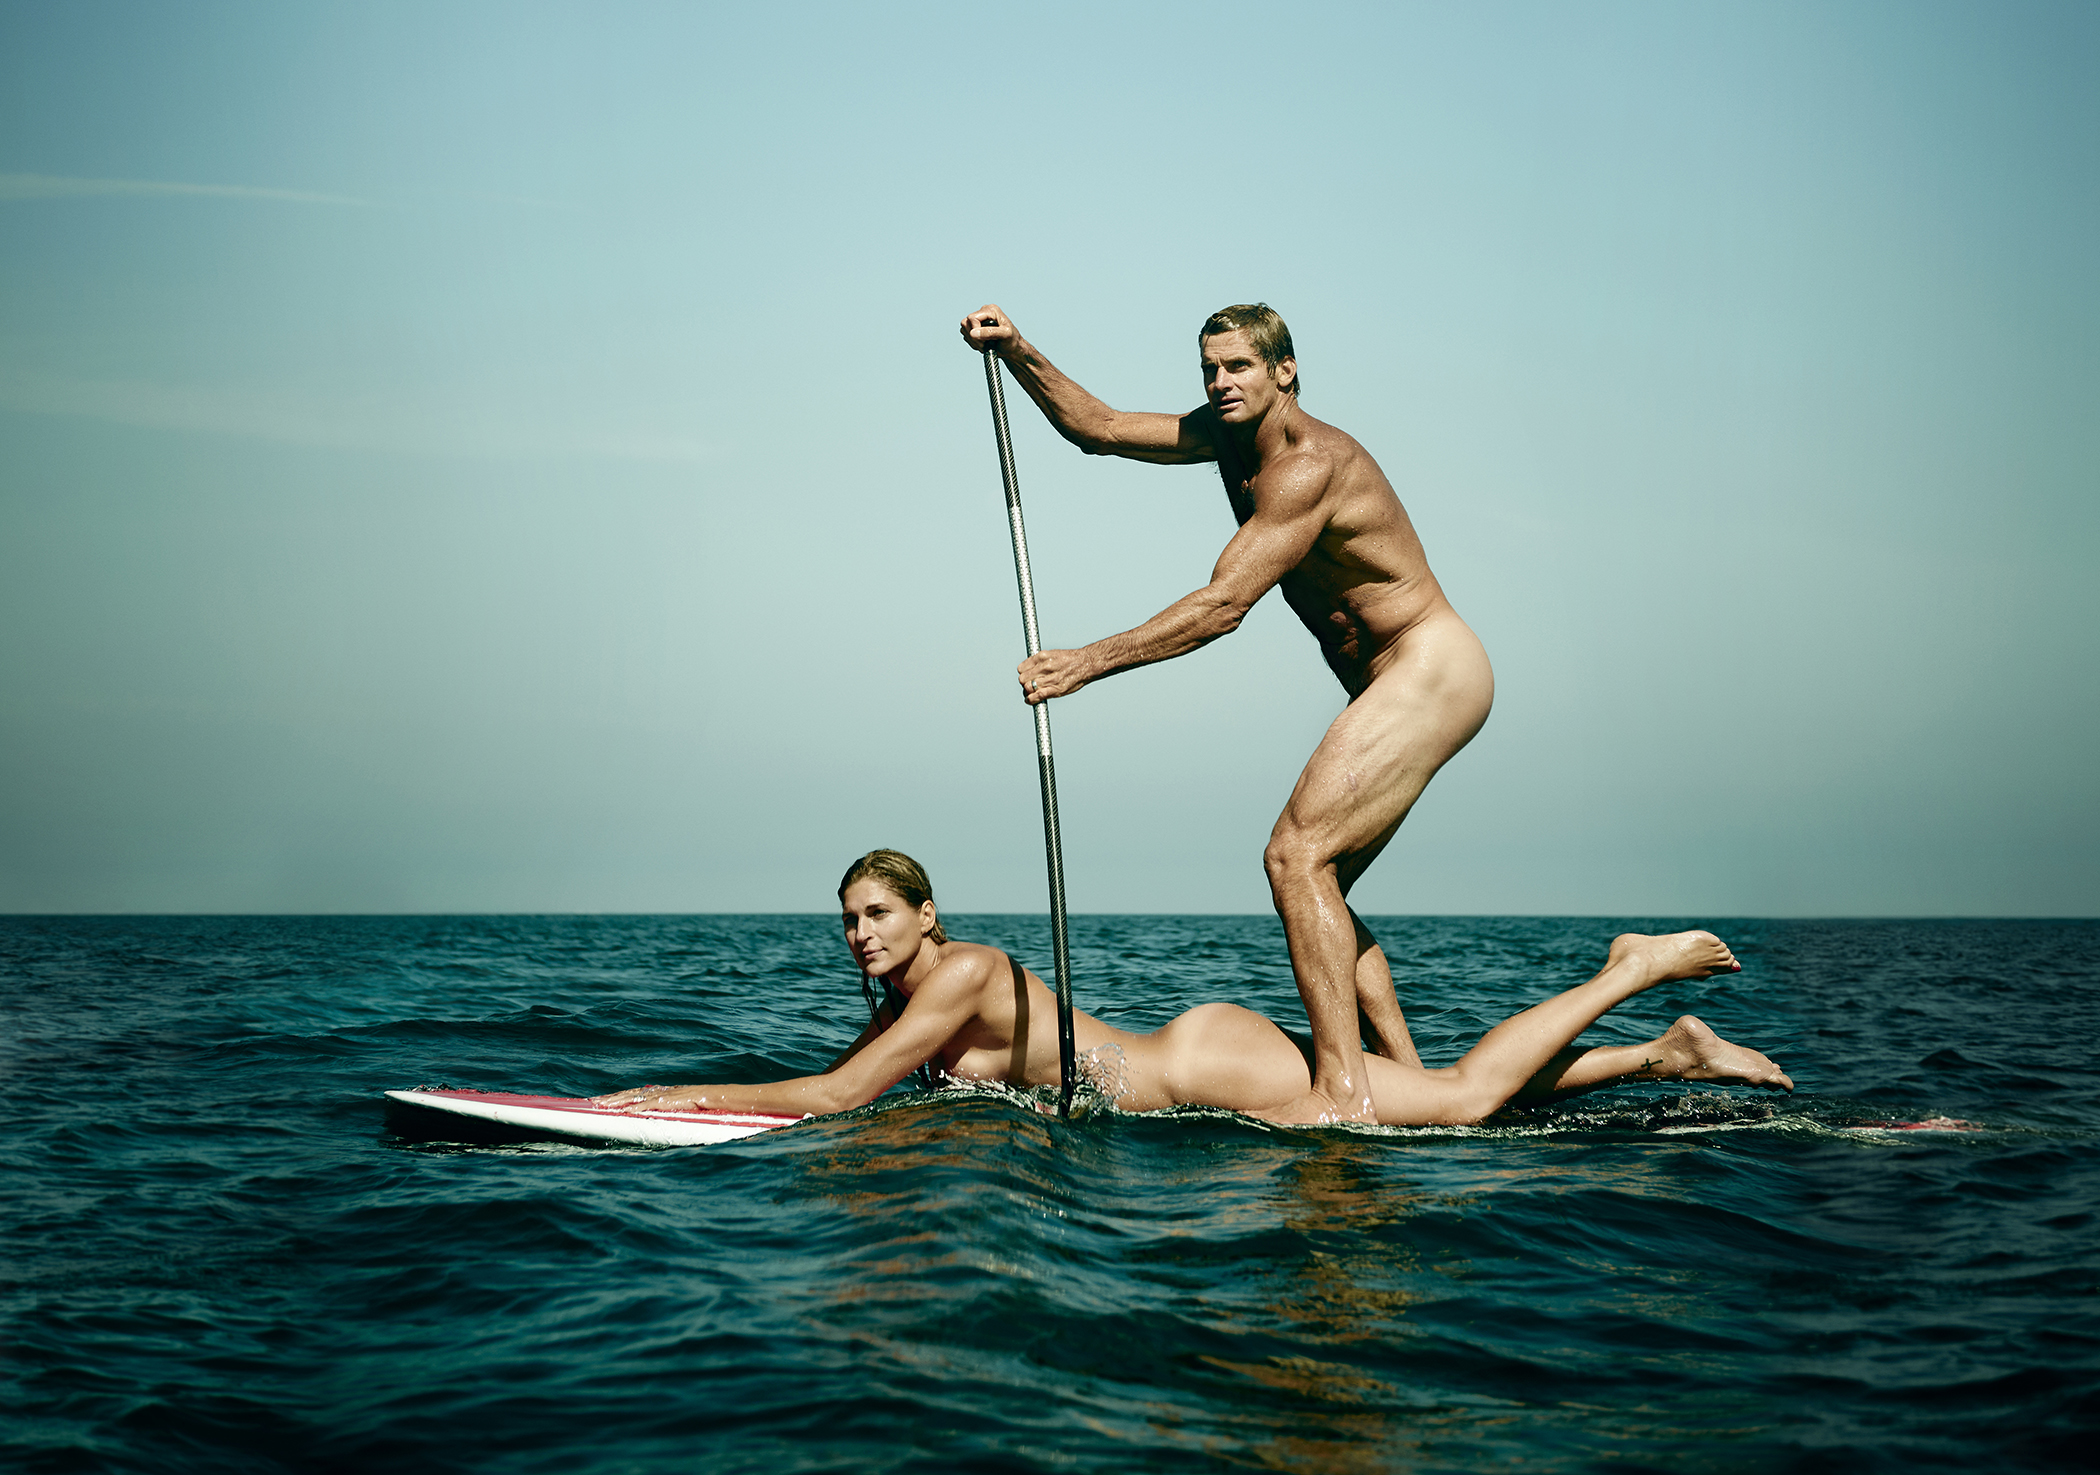 Gabrielle Reece and Laird HamiltonCREDIT: Peggy Sirota